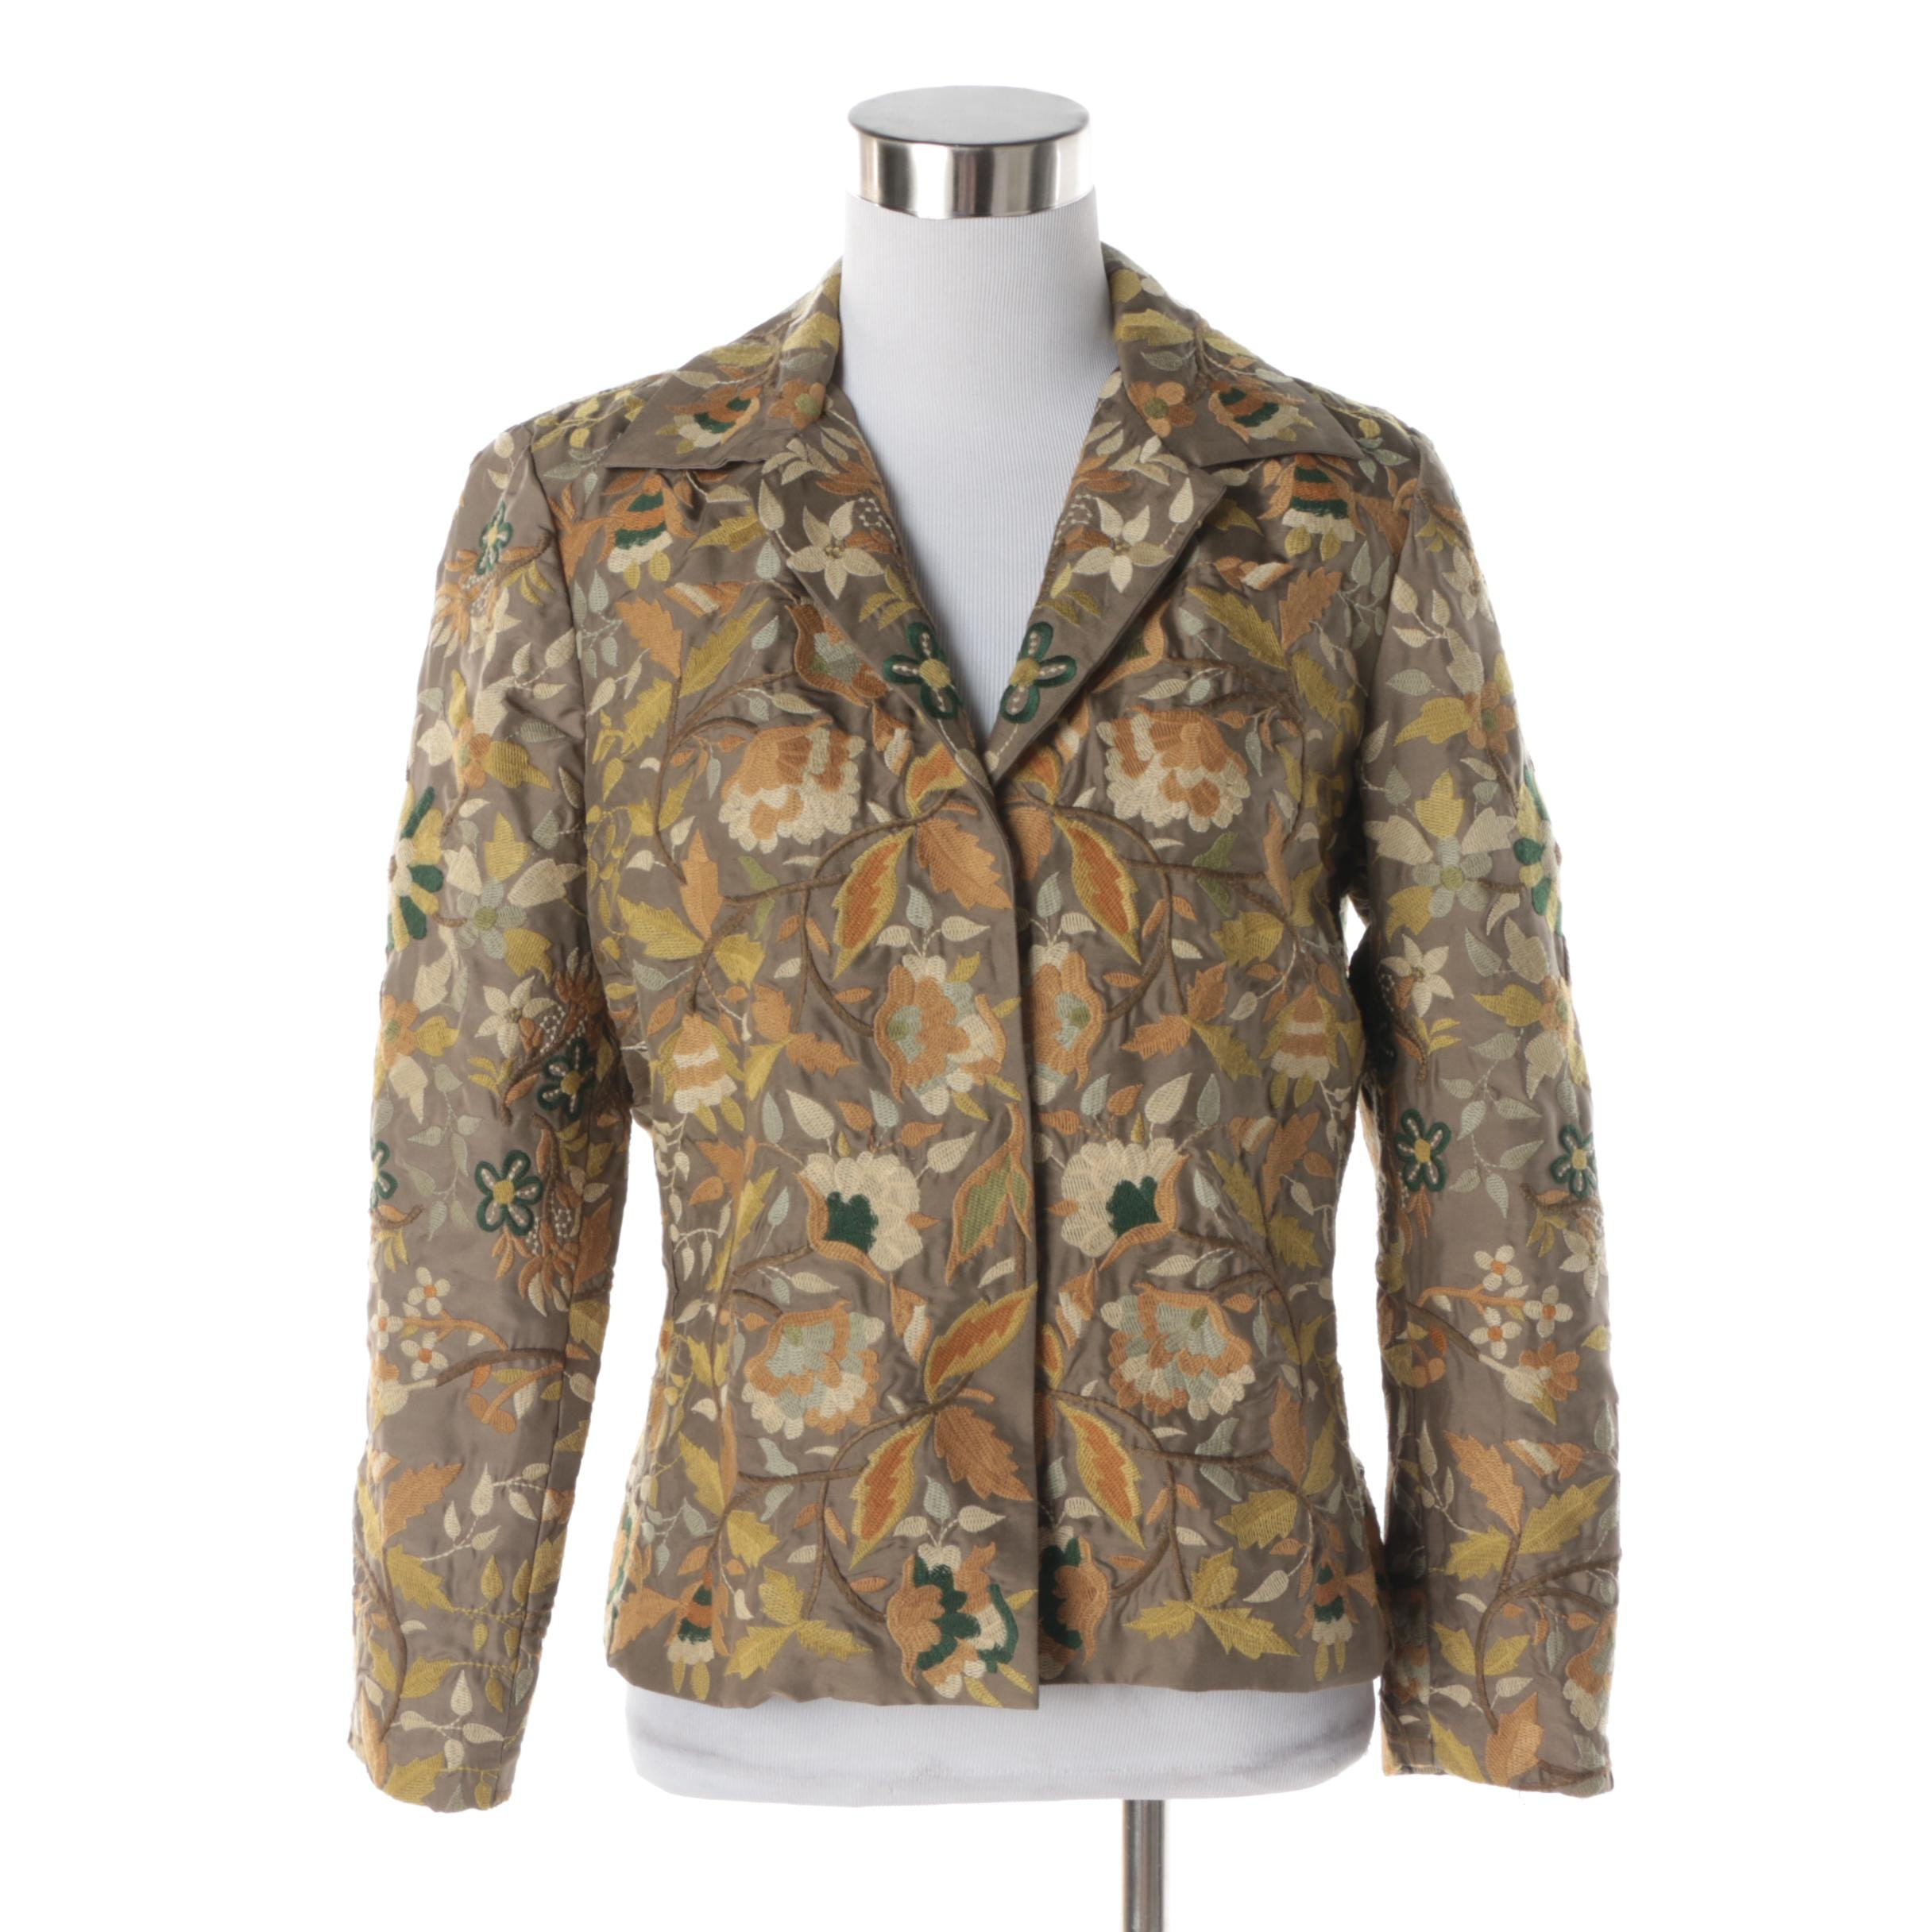 Women's Biya Embroidered Floral Motif Silk Jacket